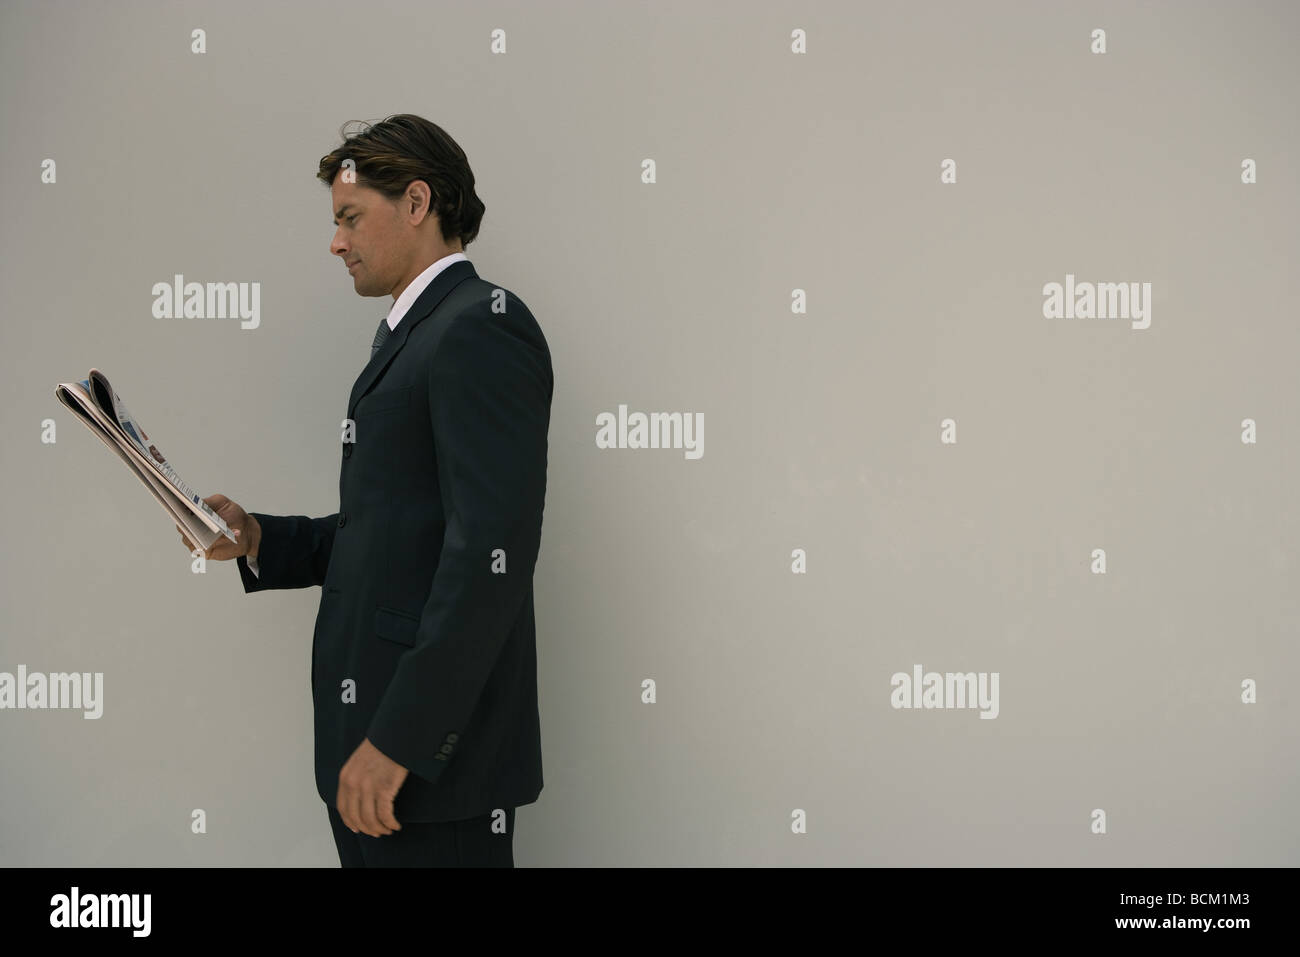 Businessman standing, reading newspaper, side view - Stock Image